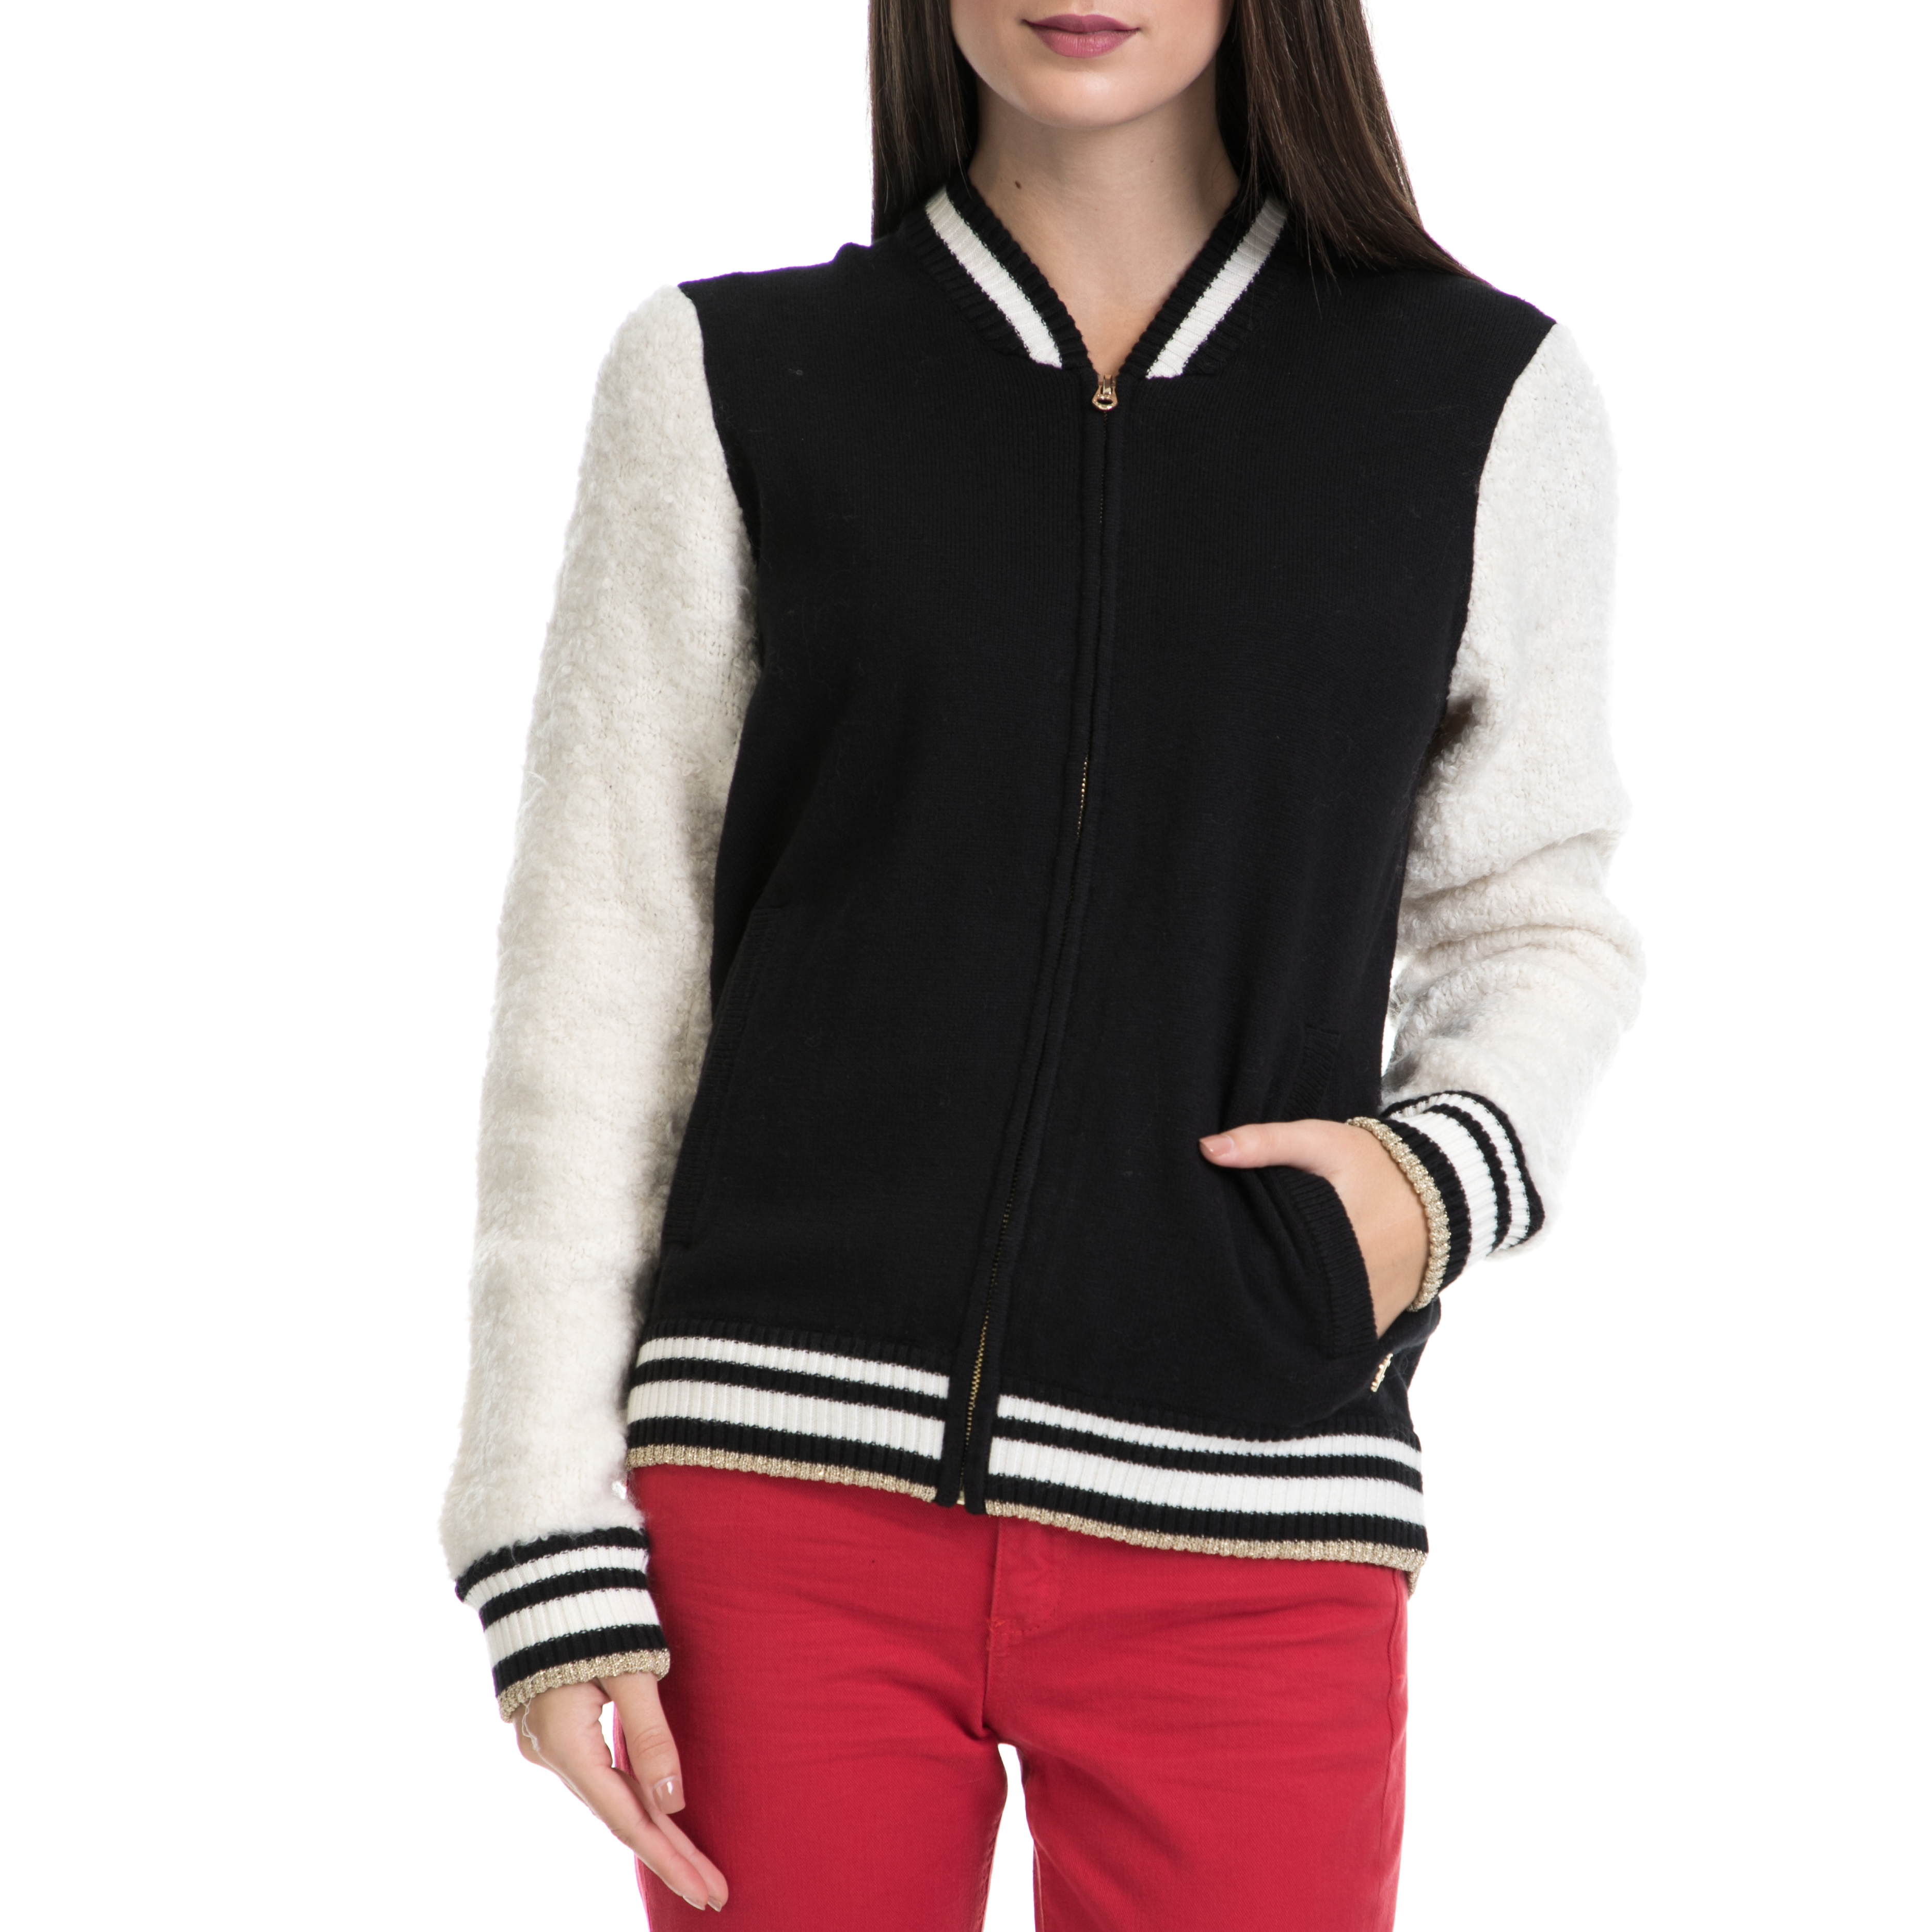 JUICY COUTURE – Γυναικείο τζάκετ JUICY COUTURE μαύρο-λευκό